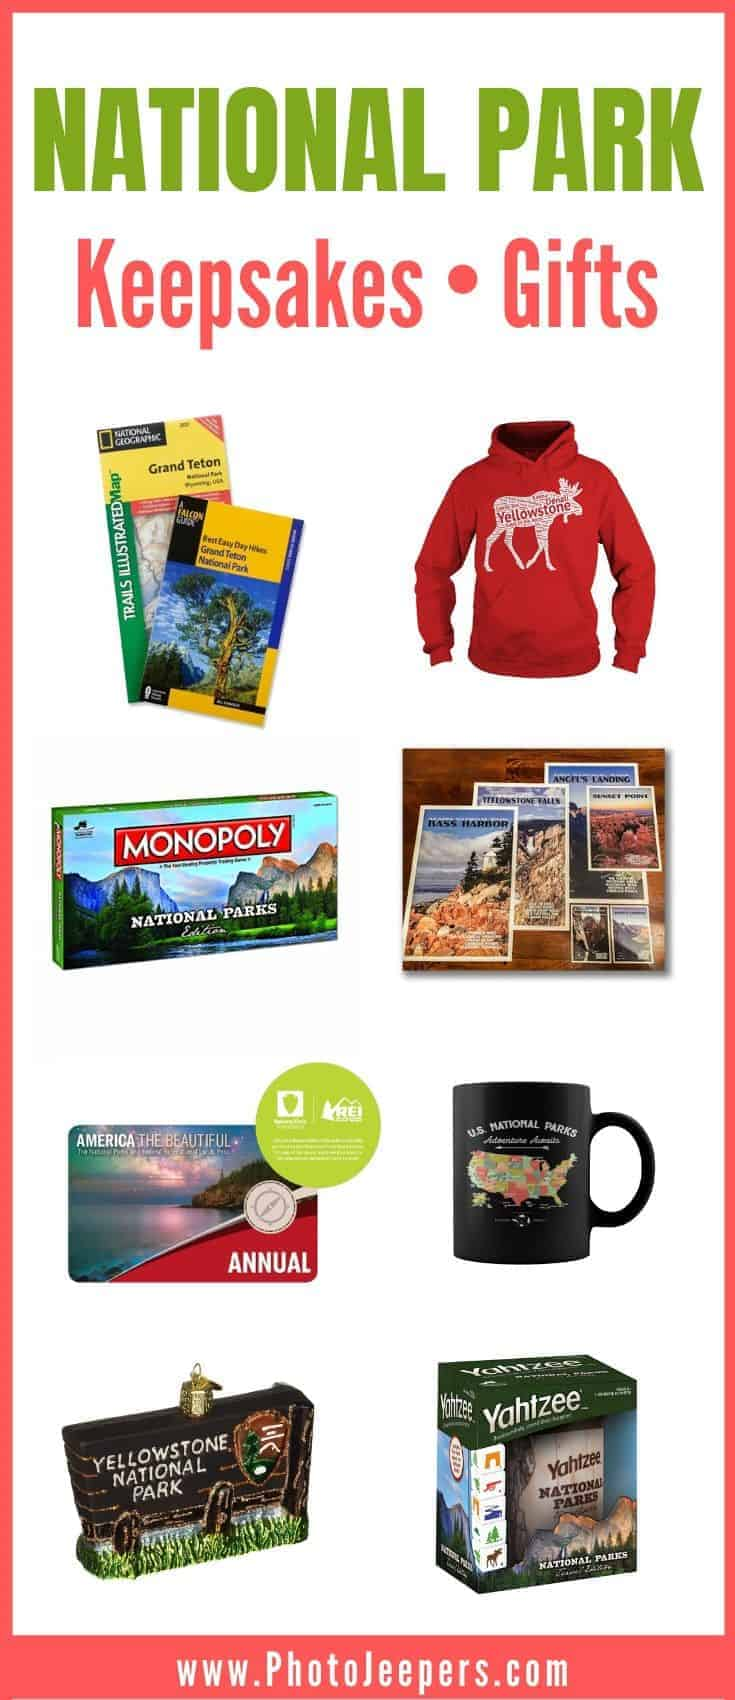 National Park Keepsakes and Gift Ideas: National Park maps, National Park clothing, National Park games, National Park calendars, National Park ornaments and more! #nationalparks #keepsake #travel #photojeepers